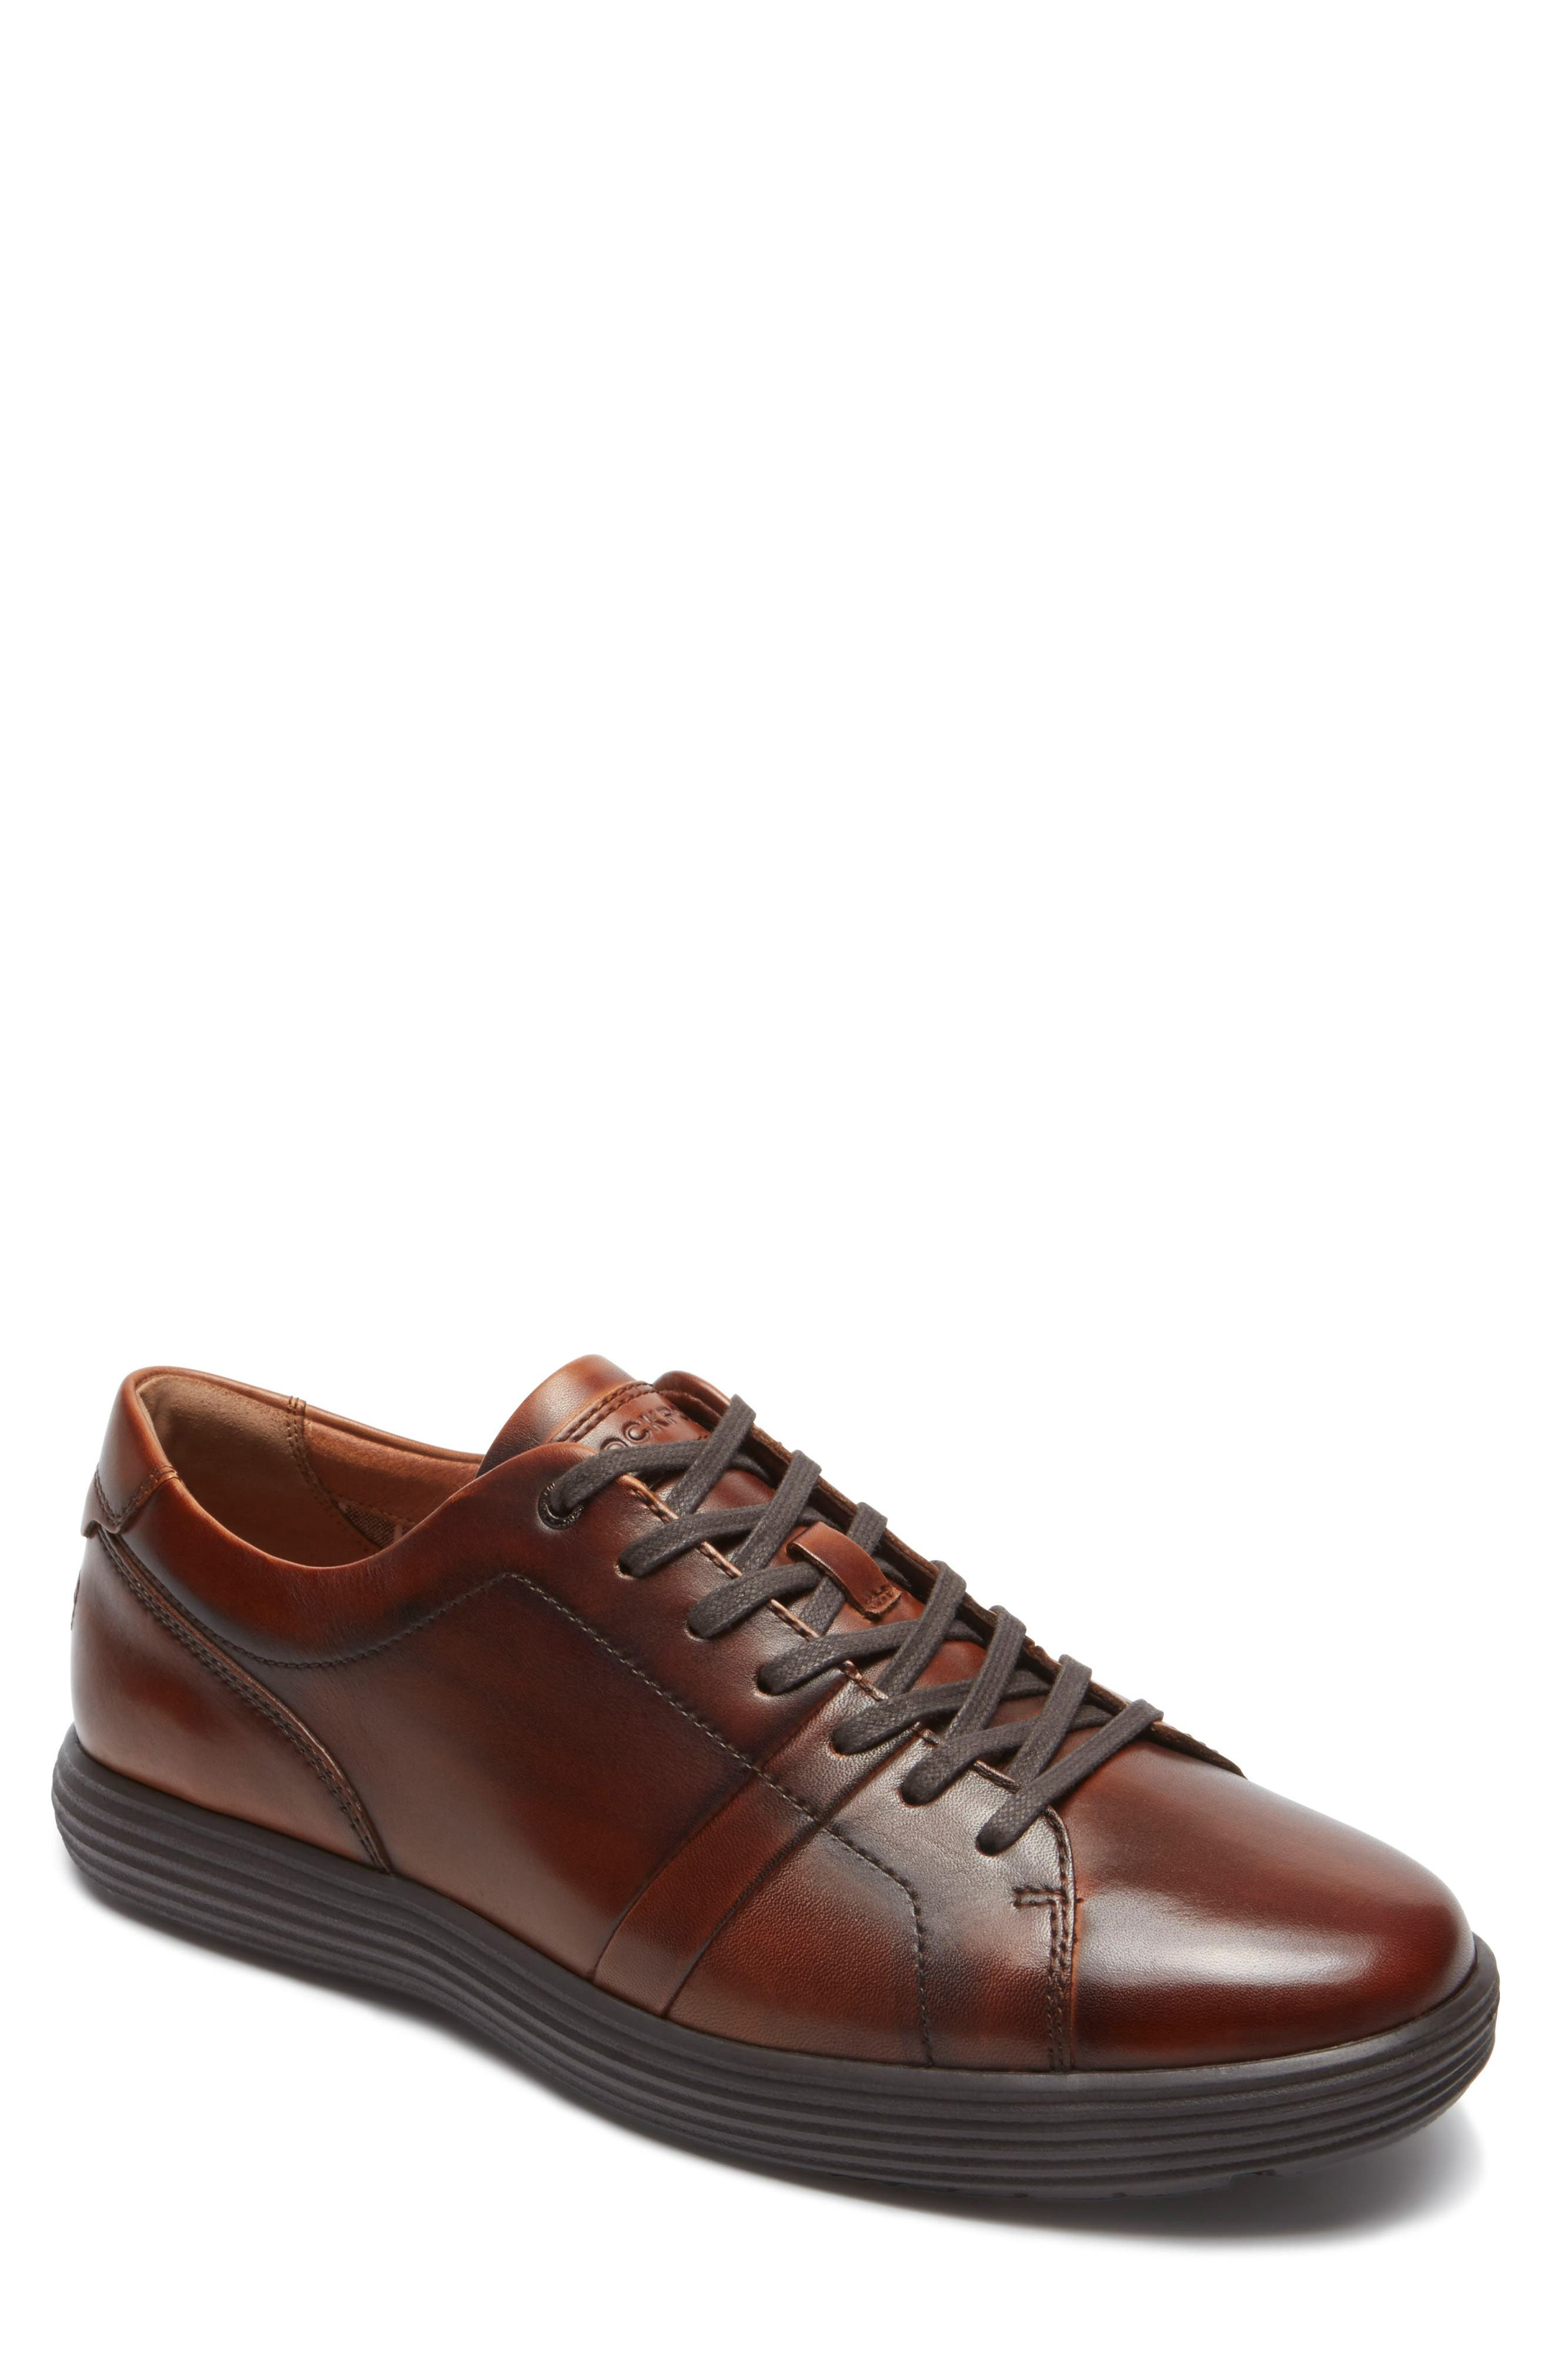 Thurston Sneaker,                             Alternate thumbnail 12, color,